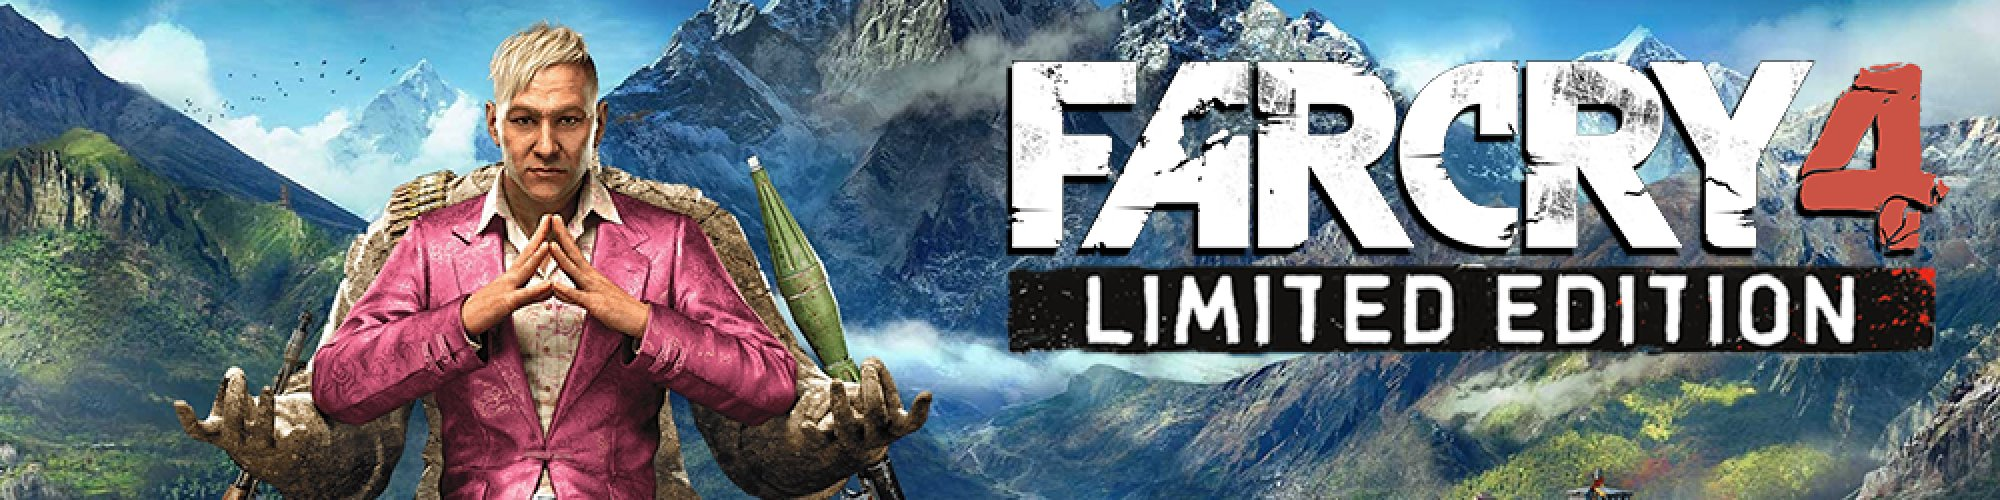 Far Cry 4 Limited Edition banner